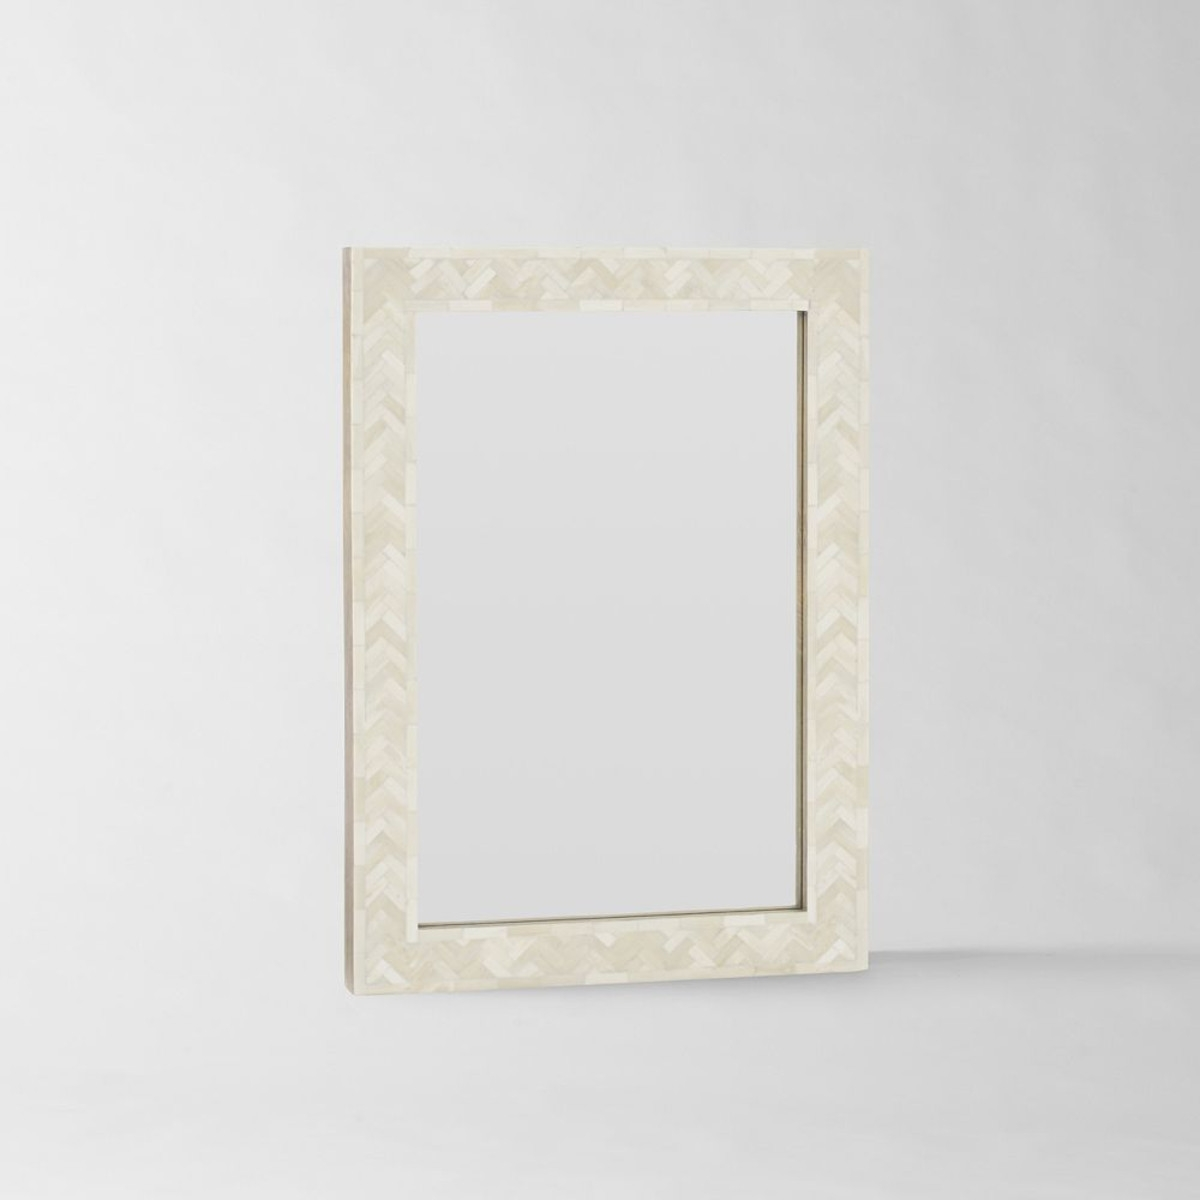 Brilliant Ideas Small Wall Mirror Winsome Design Clarendon Small With Clarendon Mirror (View 7 of 15)